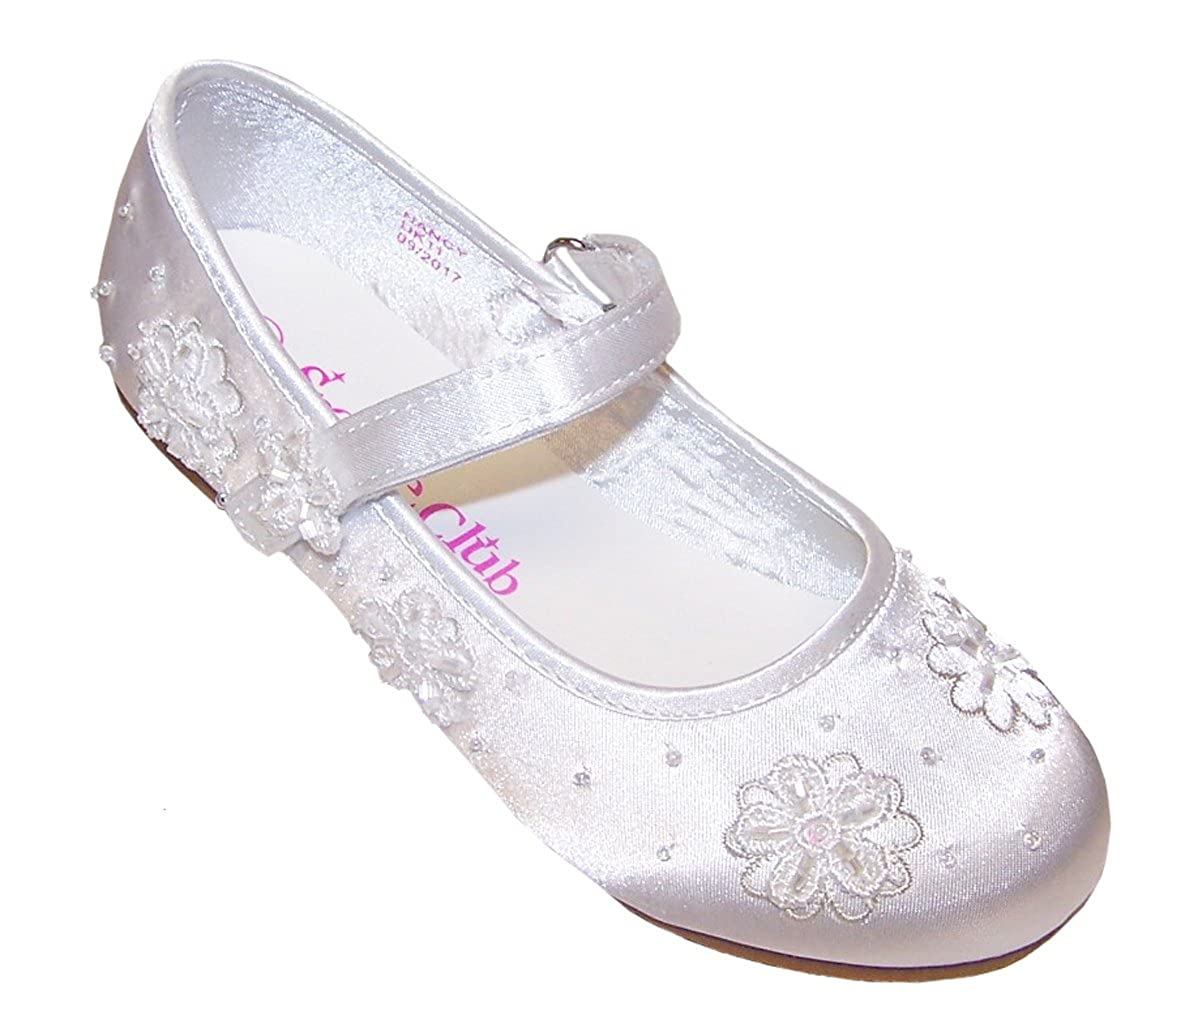 The Sparkle Club Girls White Satin Ballerina Shoes For Flower Girls